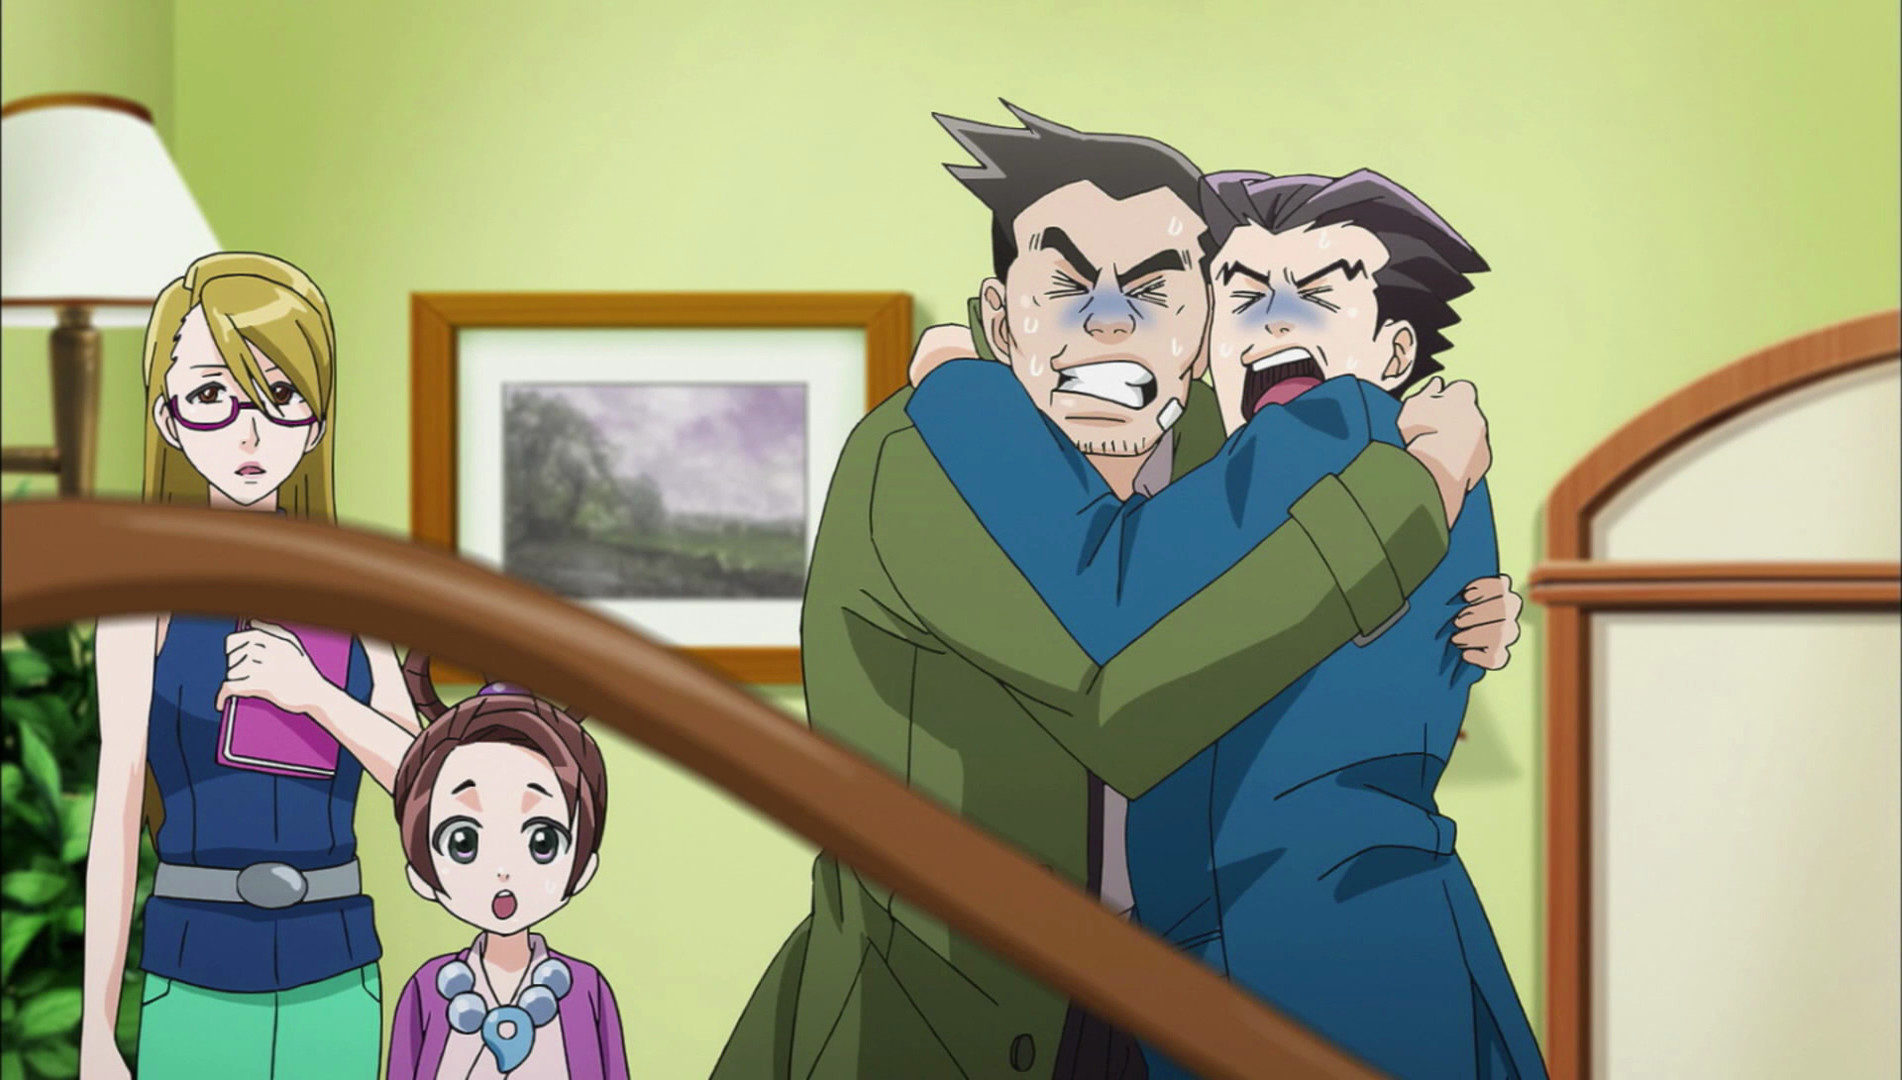 The ace attorney anime ran through its full 24 episode season last year for those with steam accounts its now available for purchase